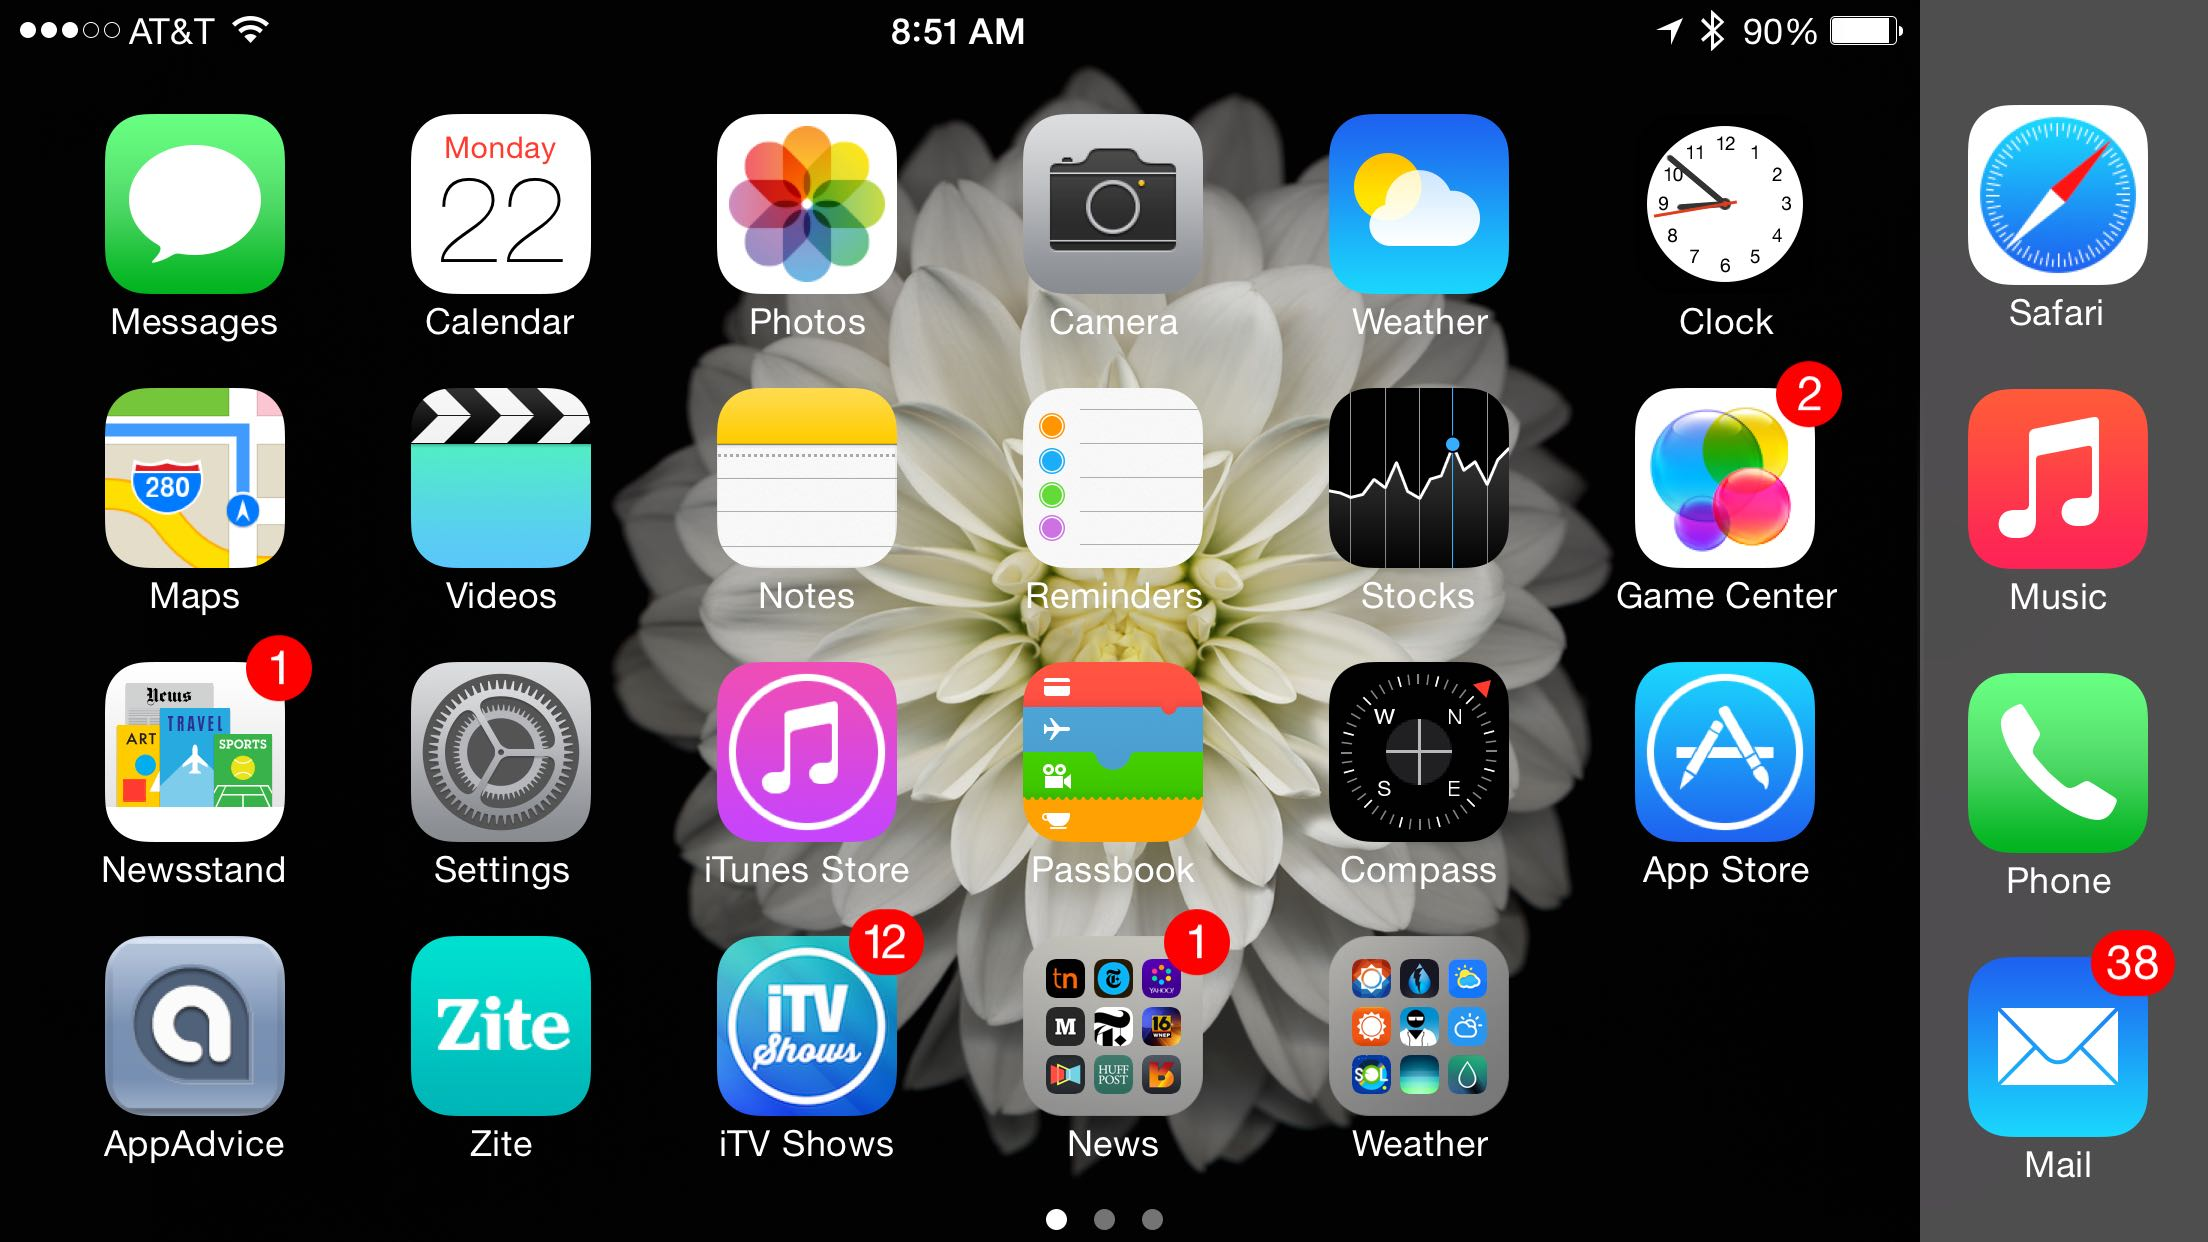 iphone 6 apps op ed learning to the iphone 6 plus and ios 8 11286